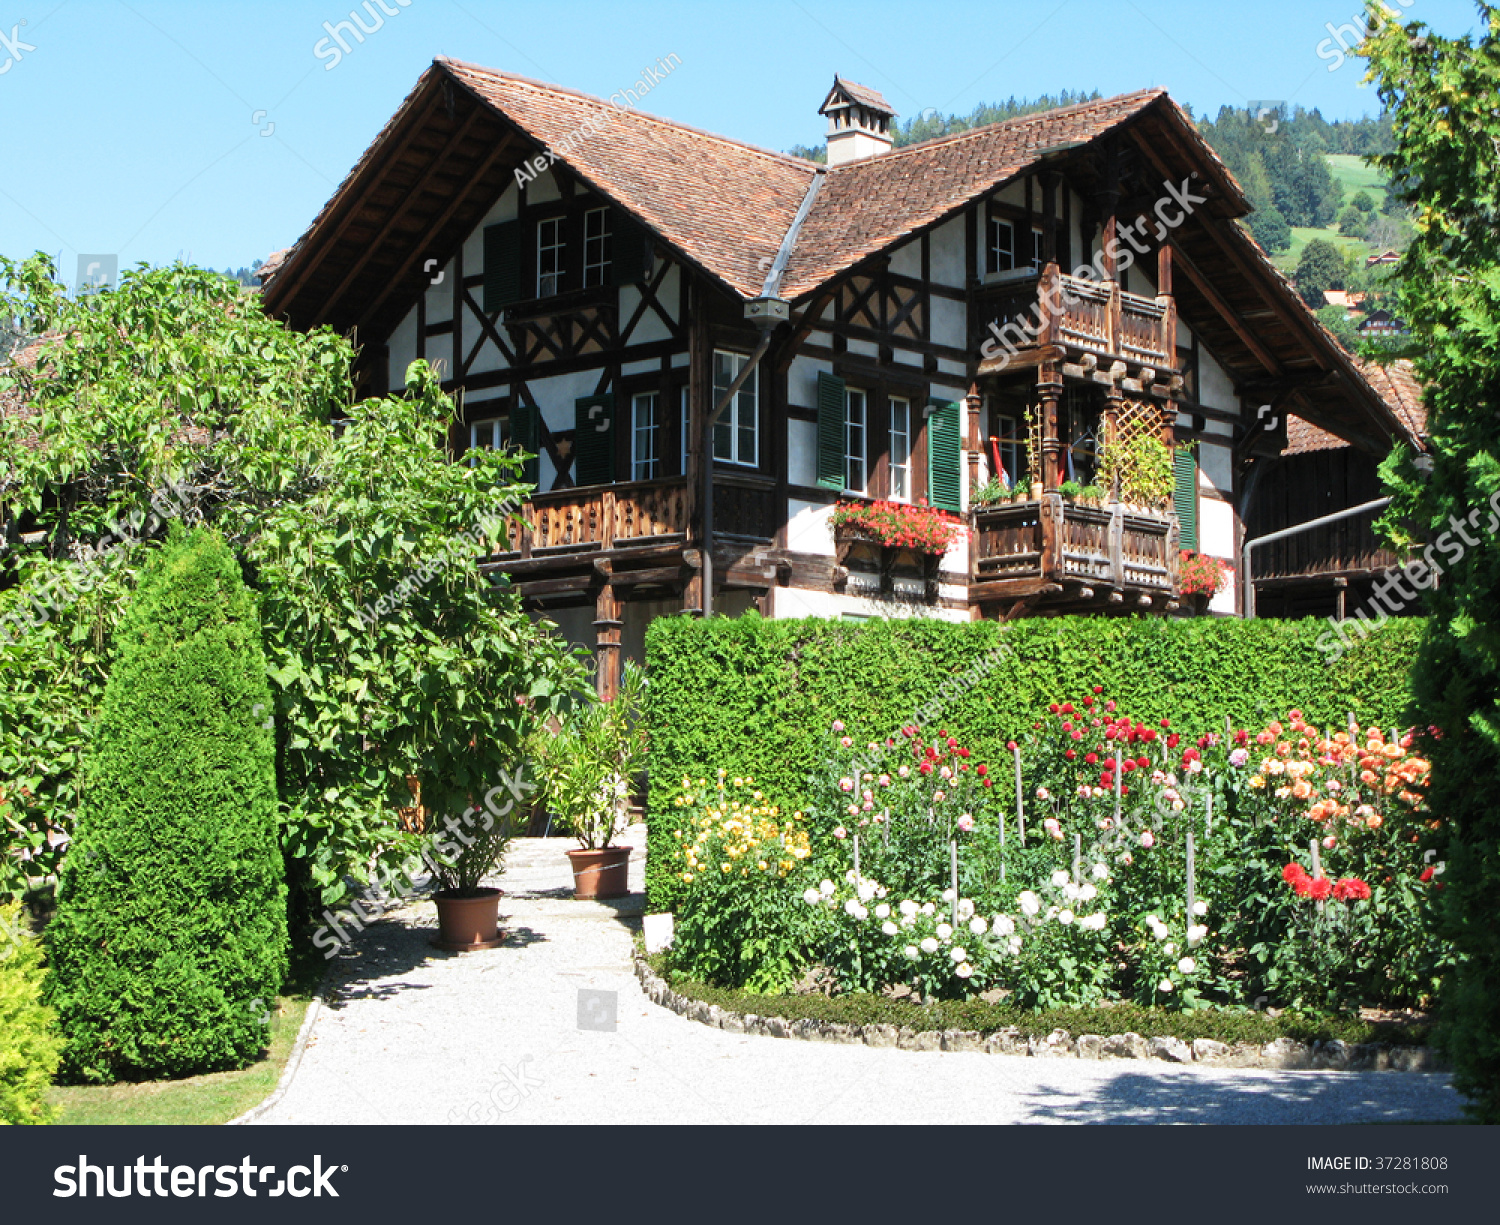 Swiss house Flowers   love Swiss houses. I love the old-style ...